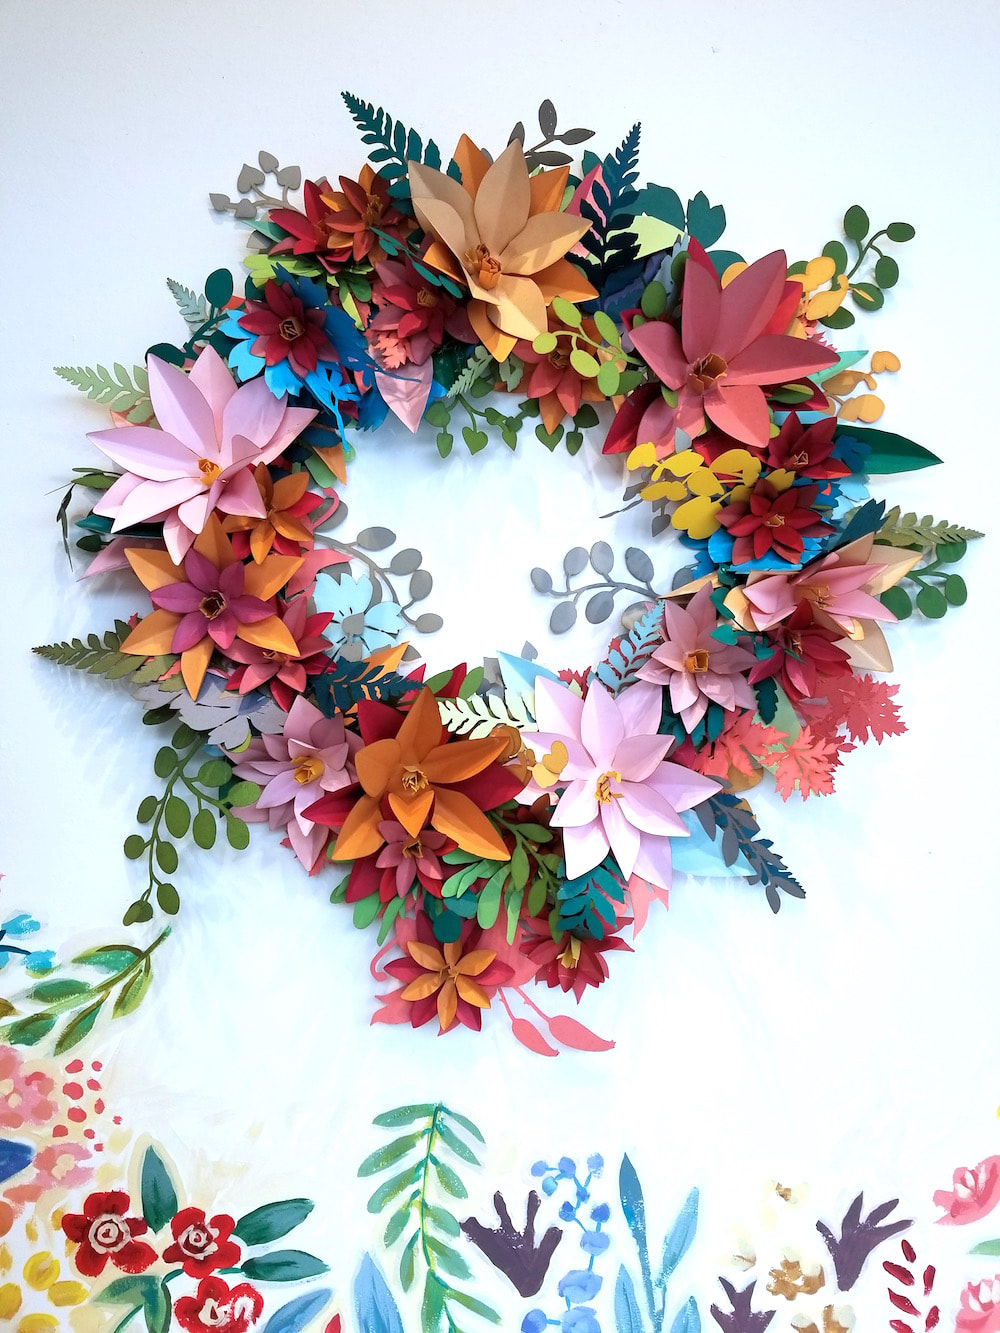 Laser cut paper florals using the Glowforge by Embellishments Studio